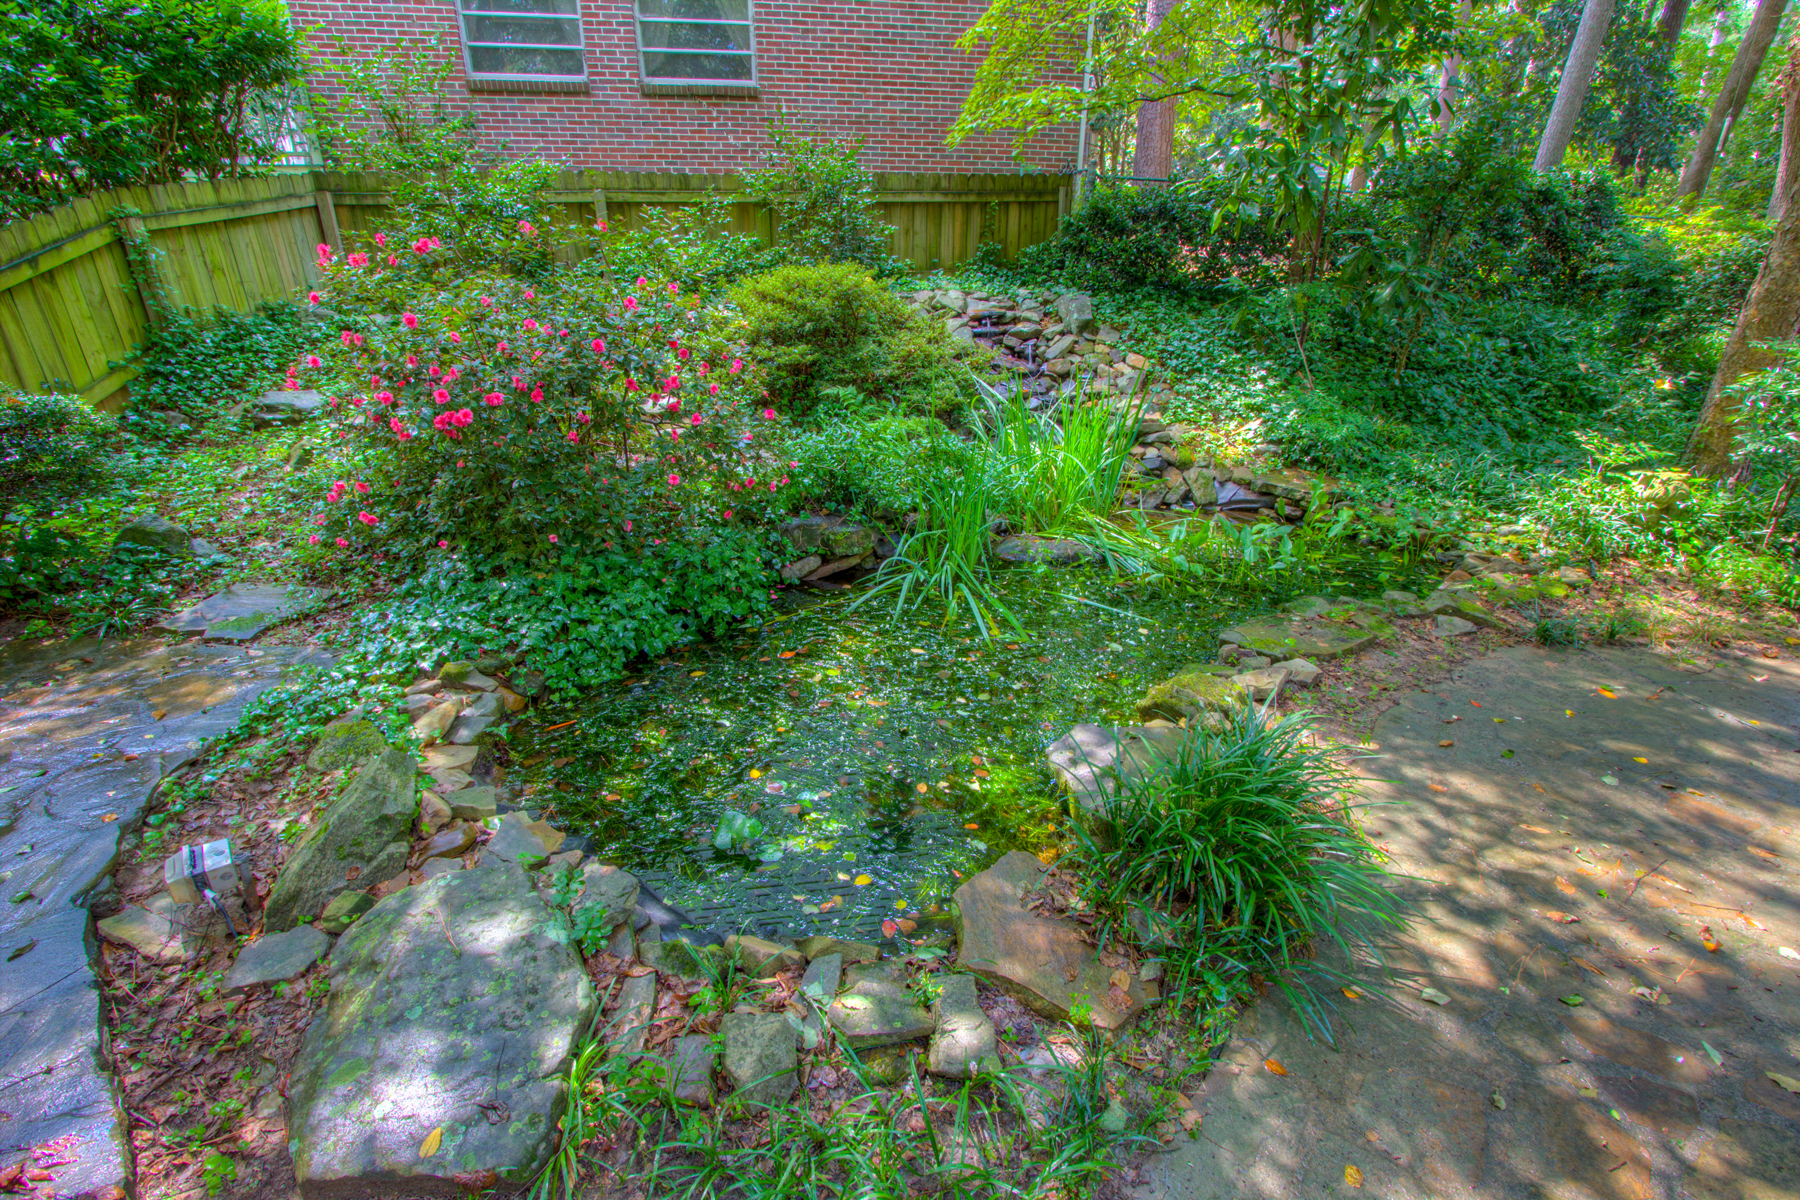 Additional photo for property listing at Charming Morningside Brick Home On The Park 1346 Beech Valley Road NE Atlanta, Georgien 30306 Usa